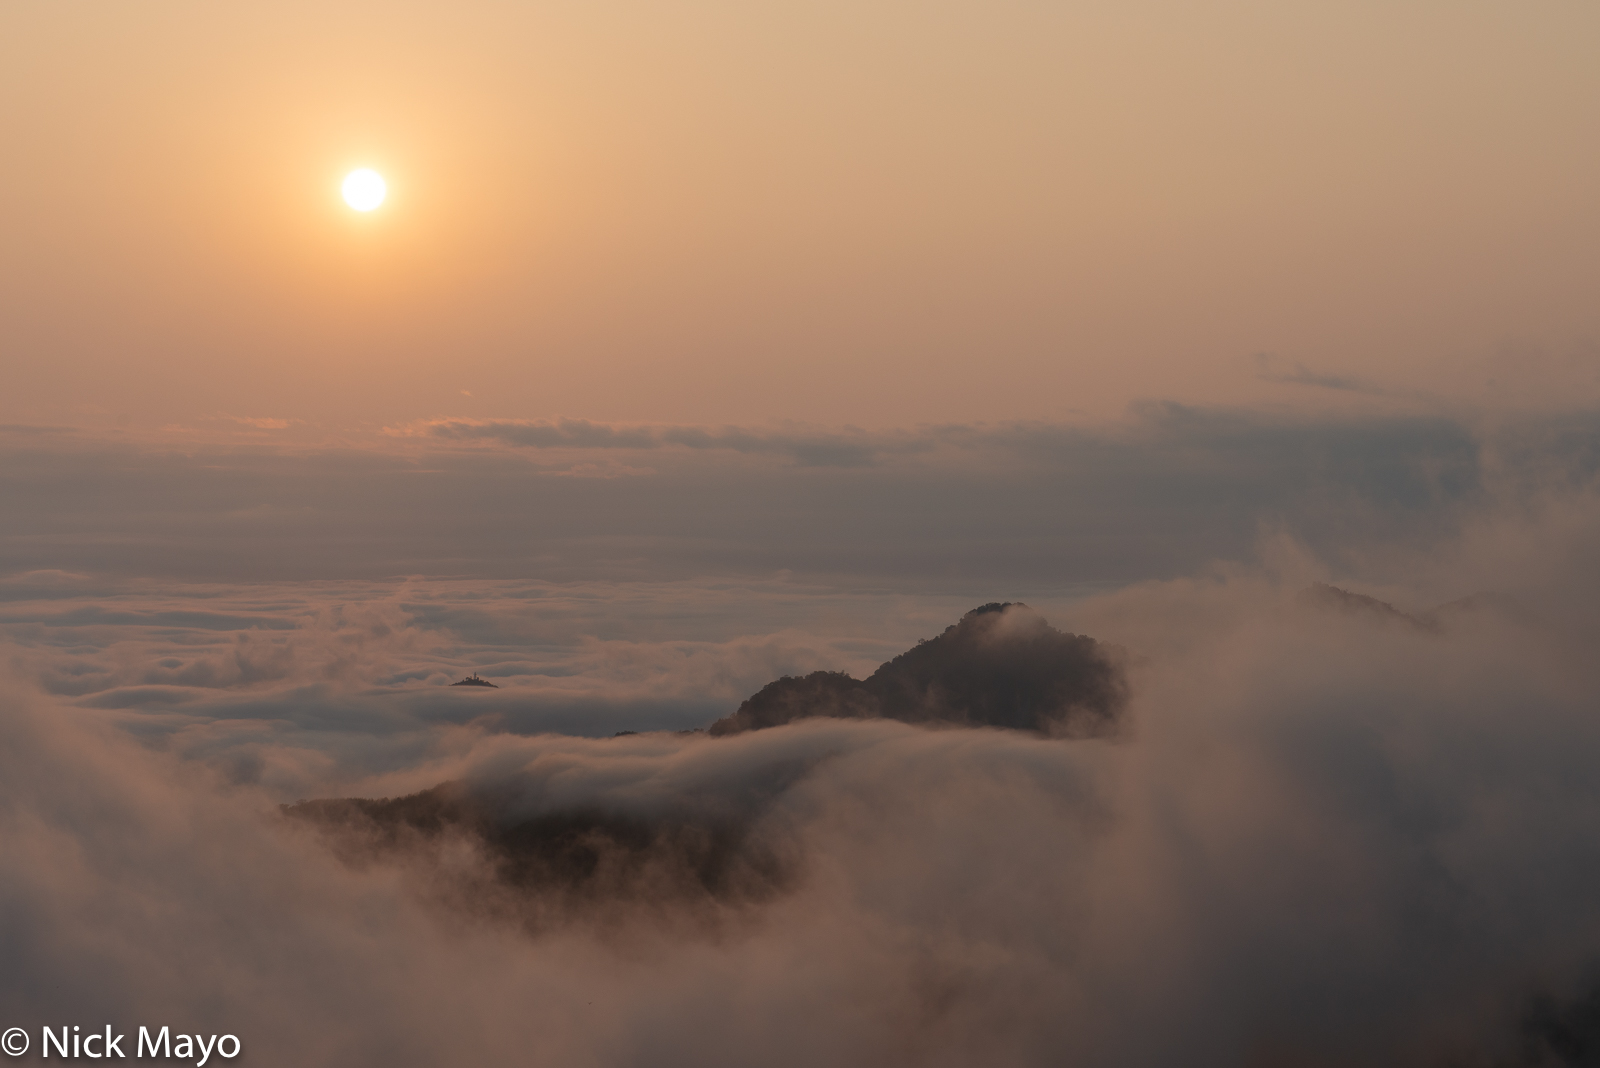 The sea of clouds at sundown looking west from Shizhao in Chiayi County.